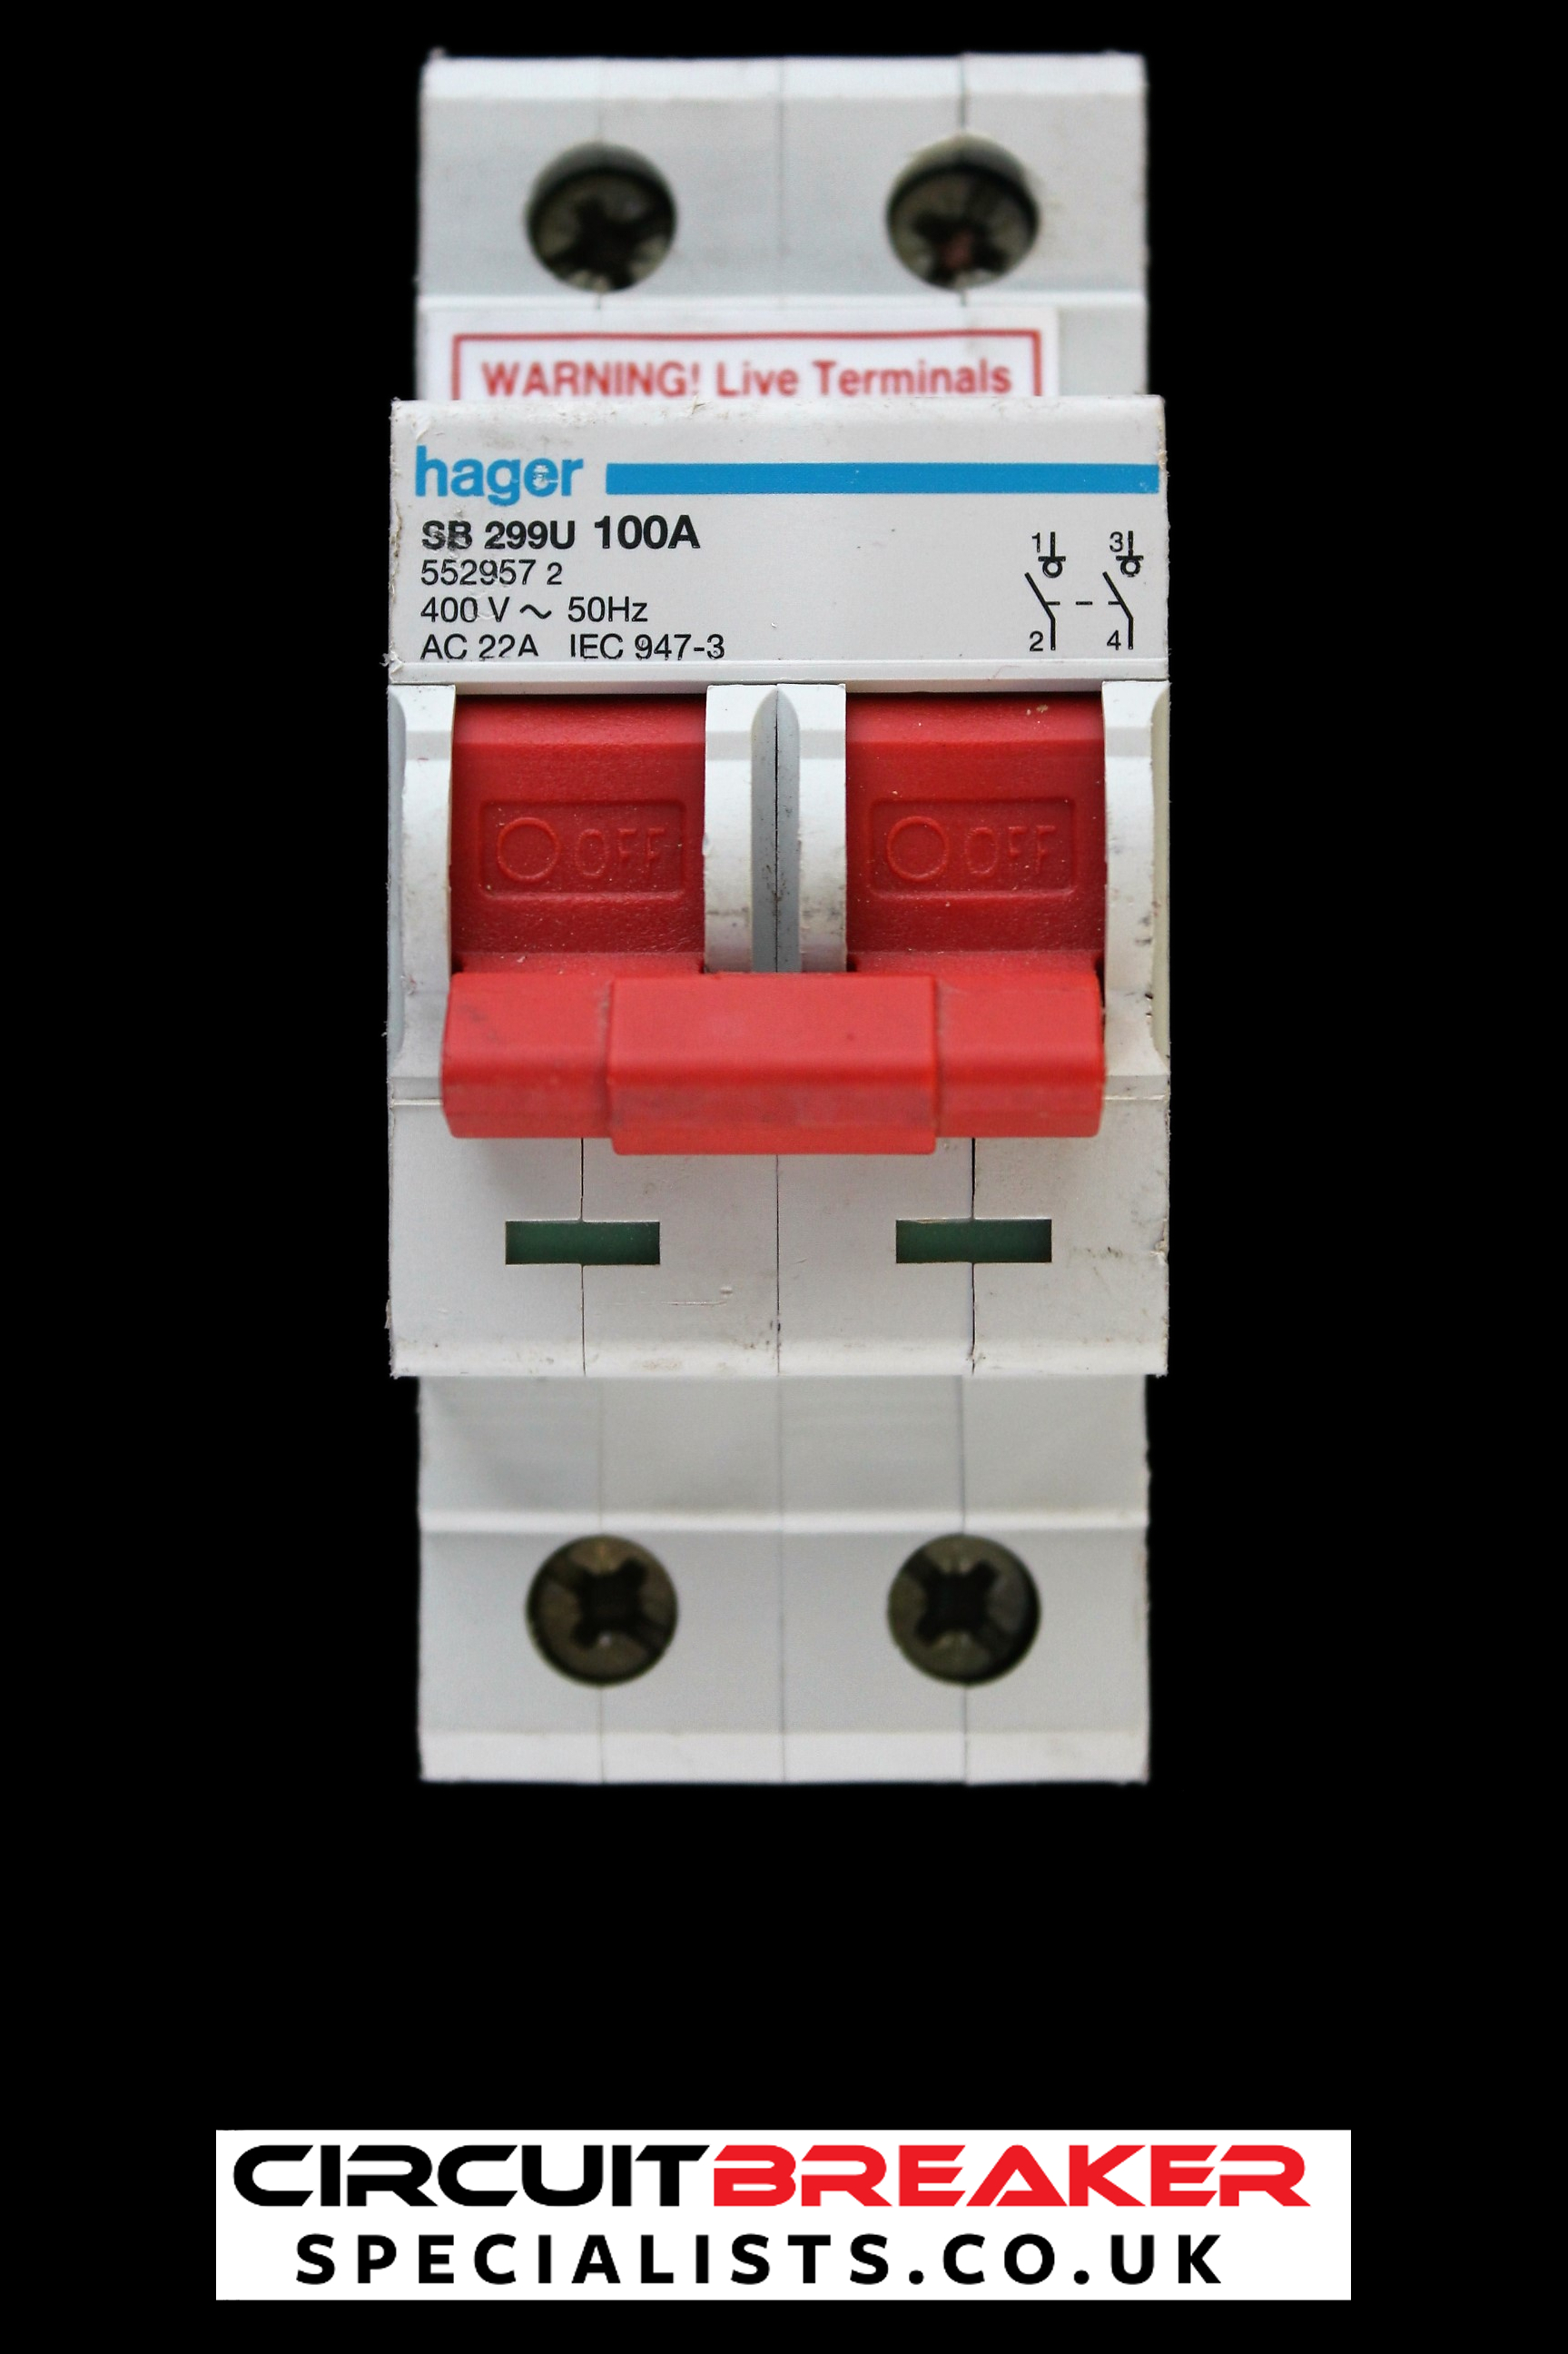 HAGER 100 AMP DOUBLE POLE MAIN SWITCH DISCONNECTOR SB299U 552957